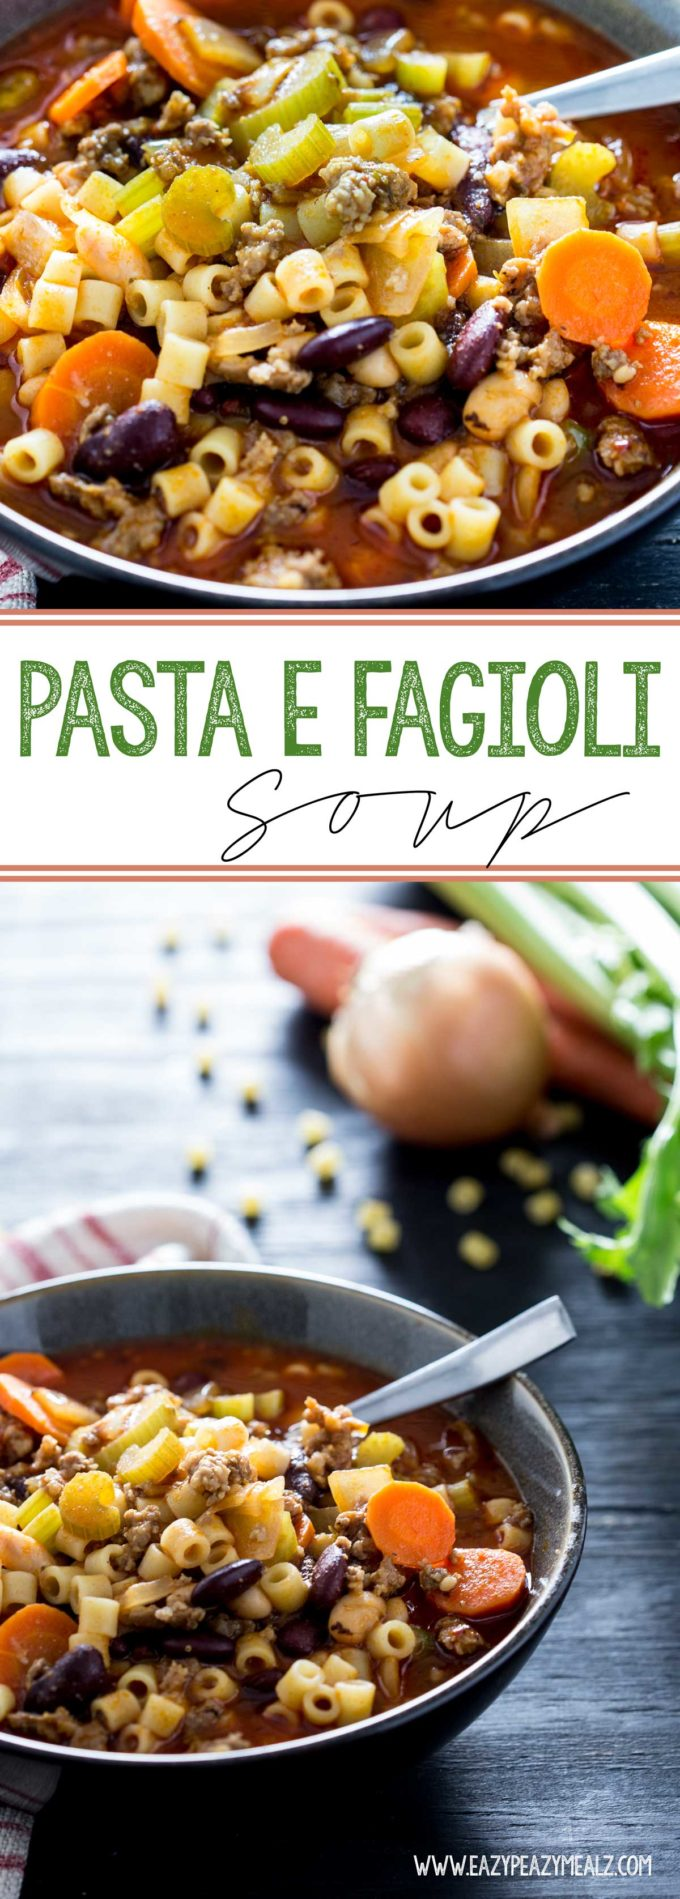 Pasta E Fagioli Soup (Italian Pasta And Bean Soup) Recipe ...